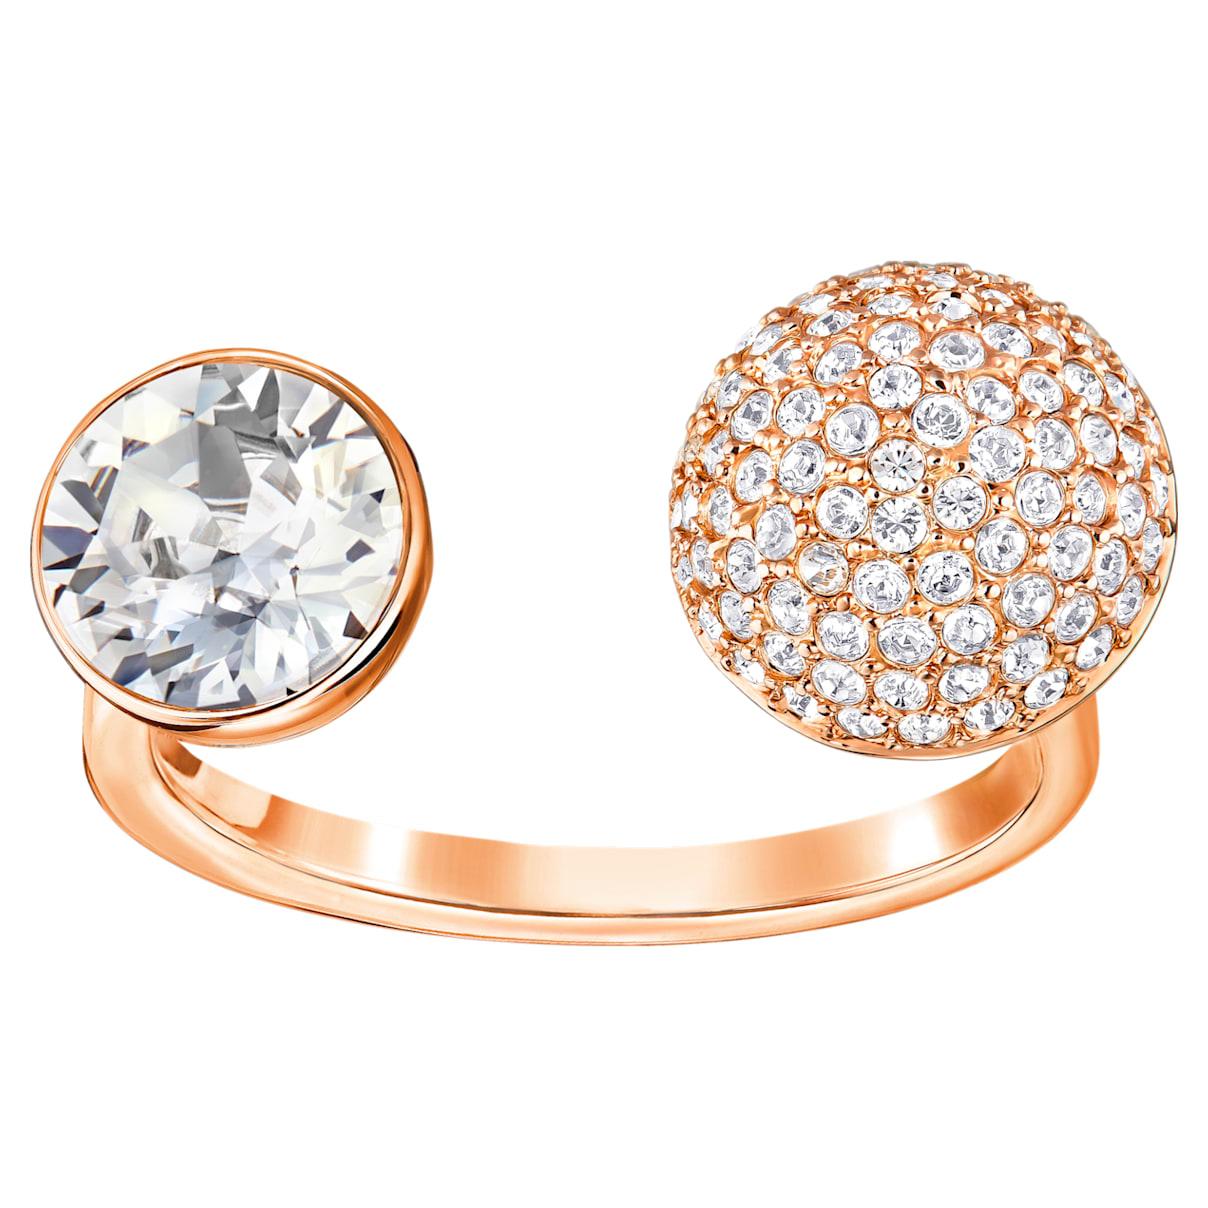 Forward Open Ring, White, Rose-gold tone plated